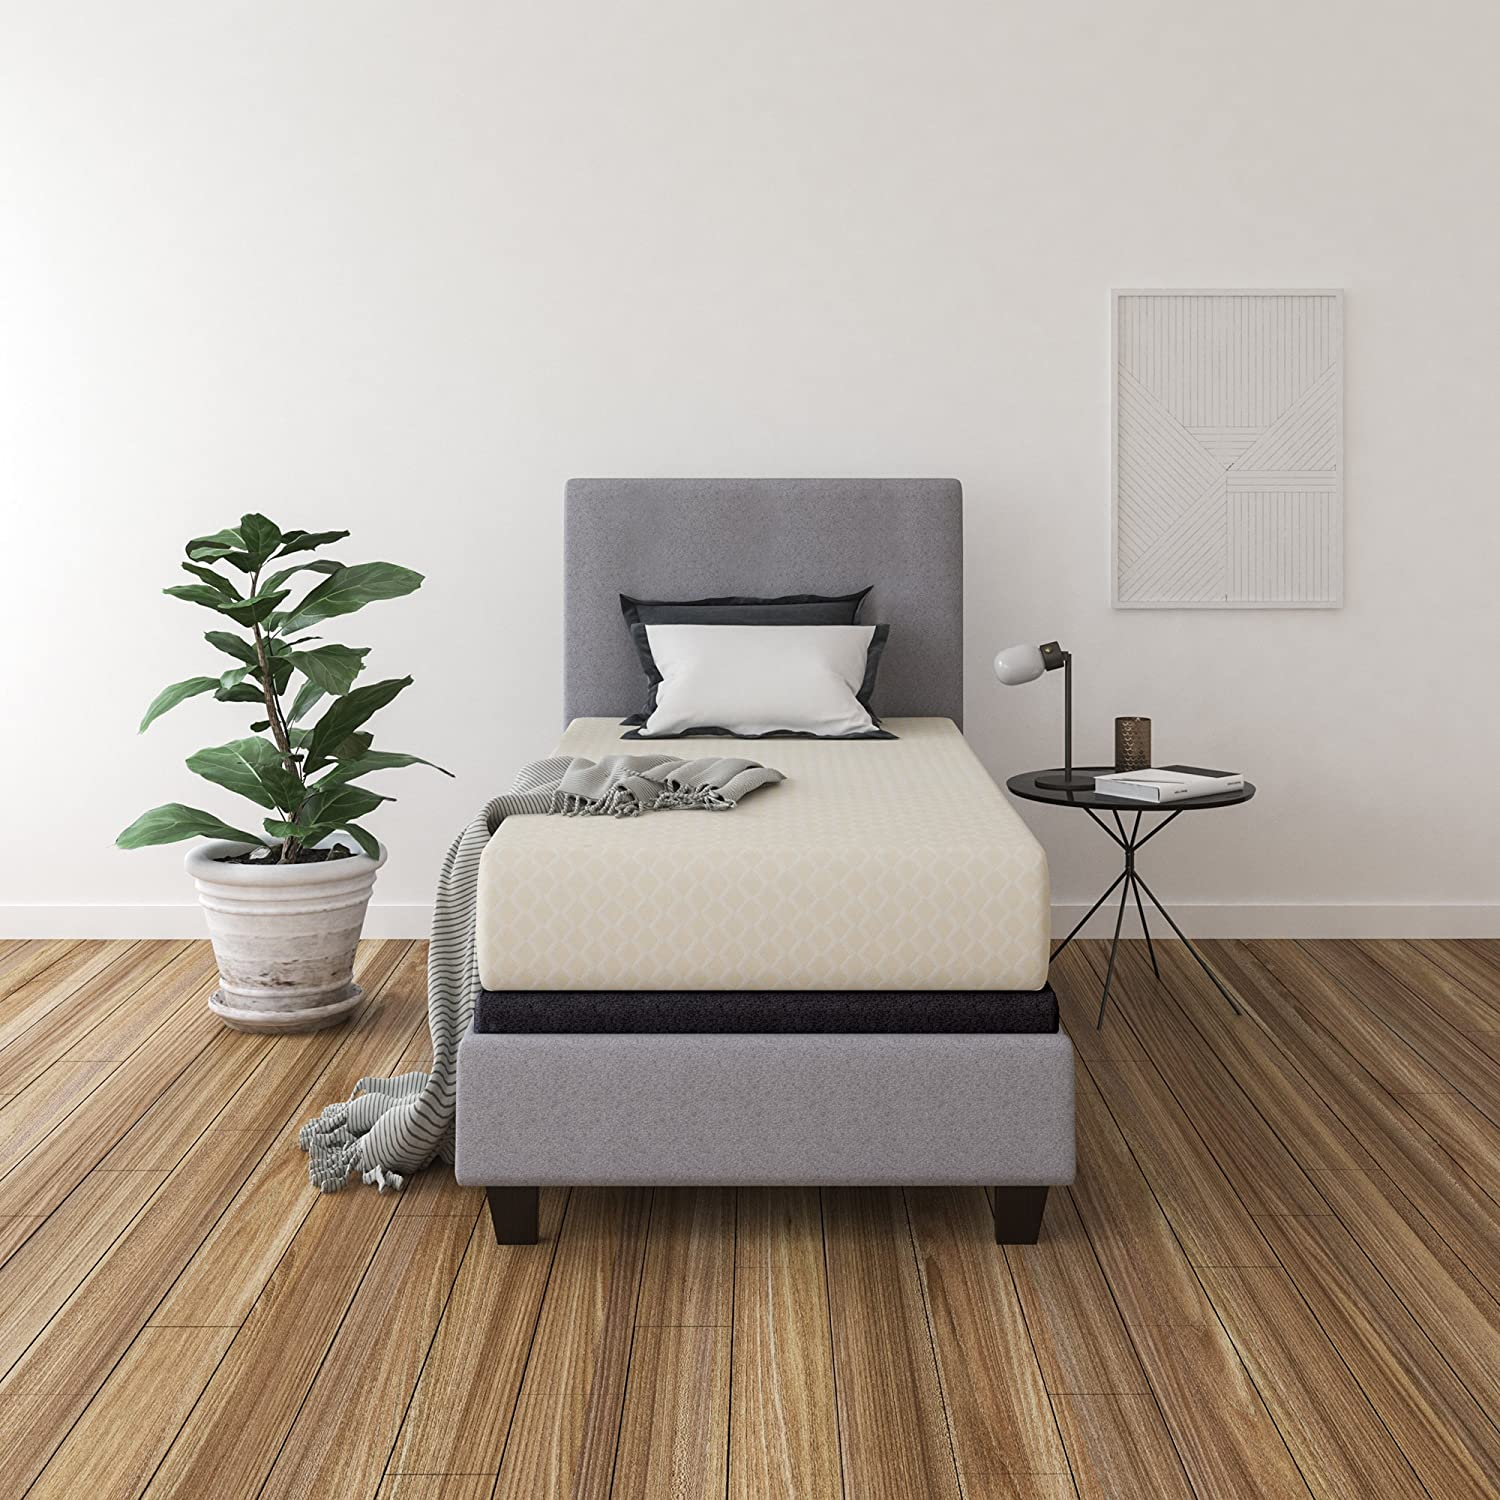 Ashley Furniture Signature Design - 12 Inch Chime Express Memory Foam Mattress - Bed in a Box - Twin - Firm Comfort Level - White